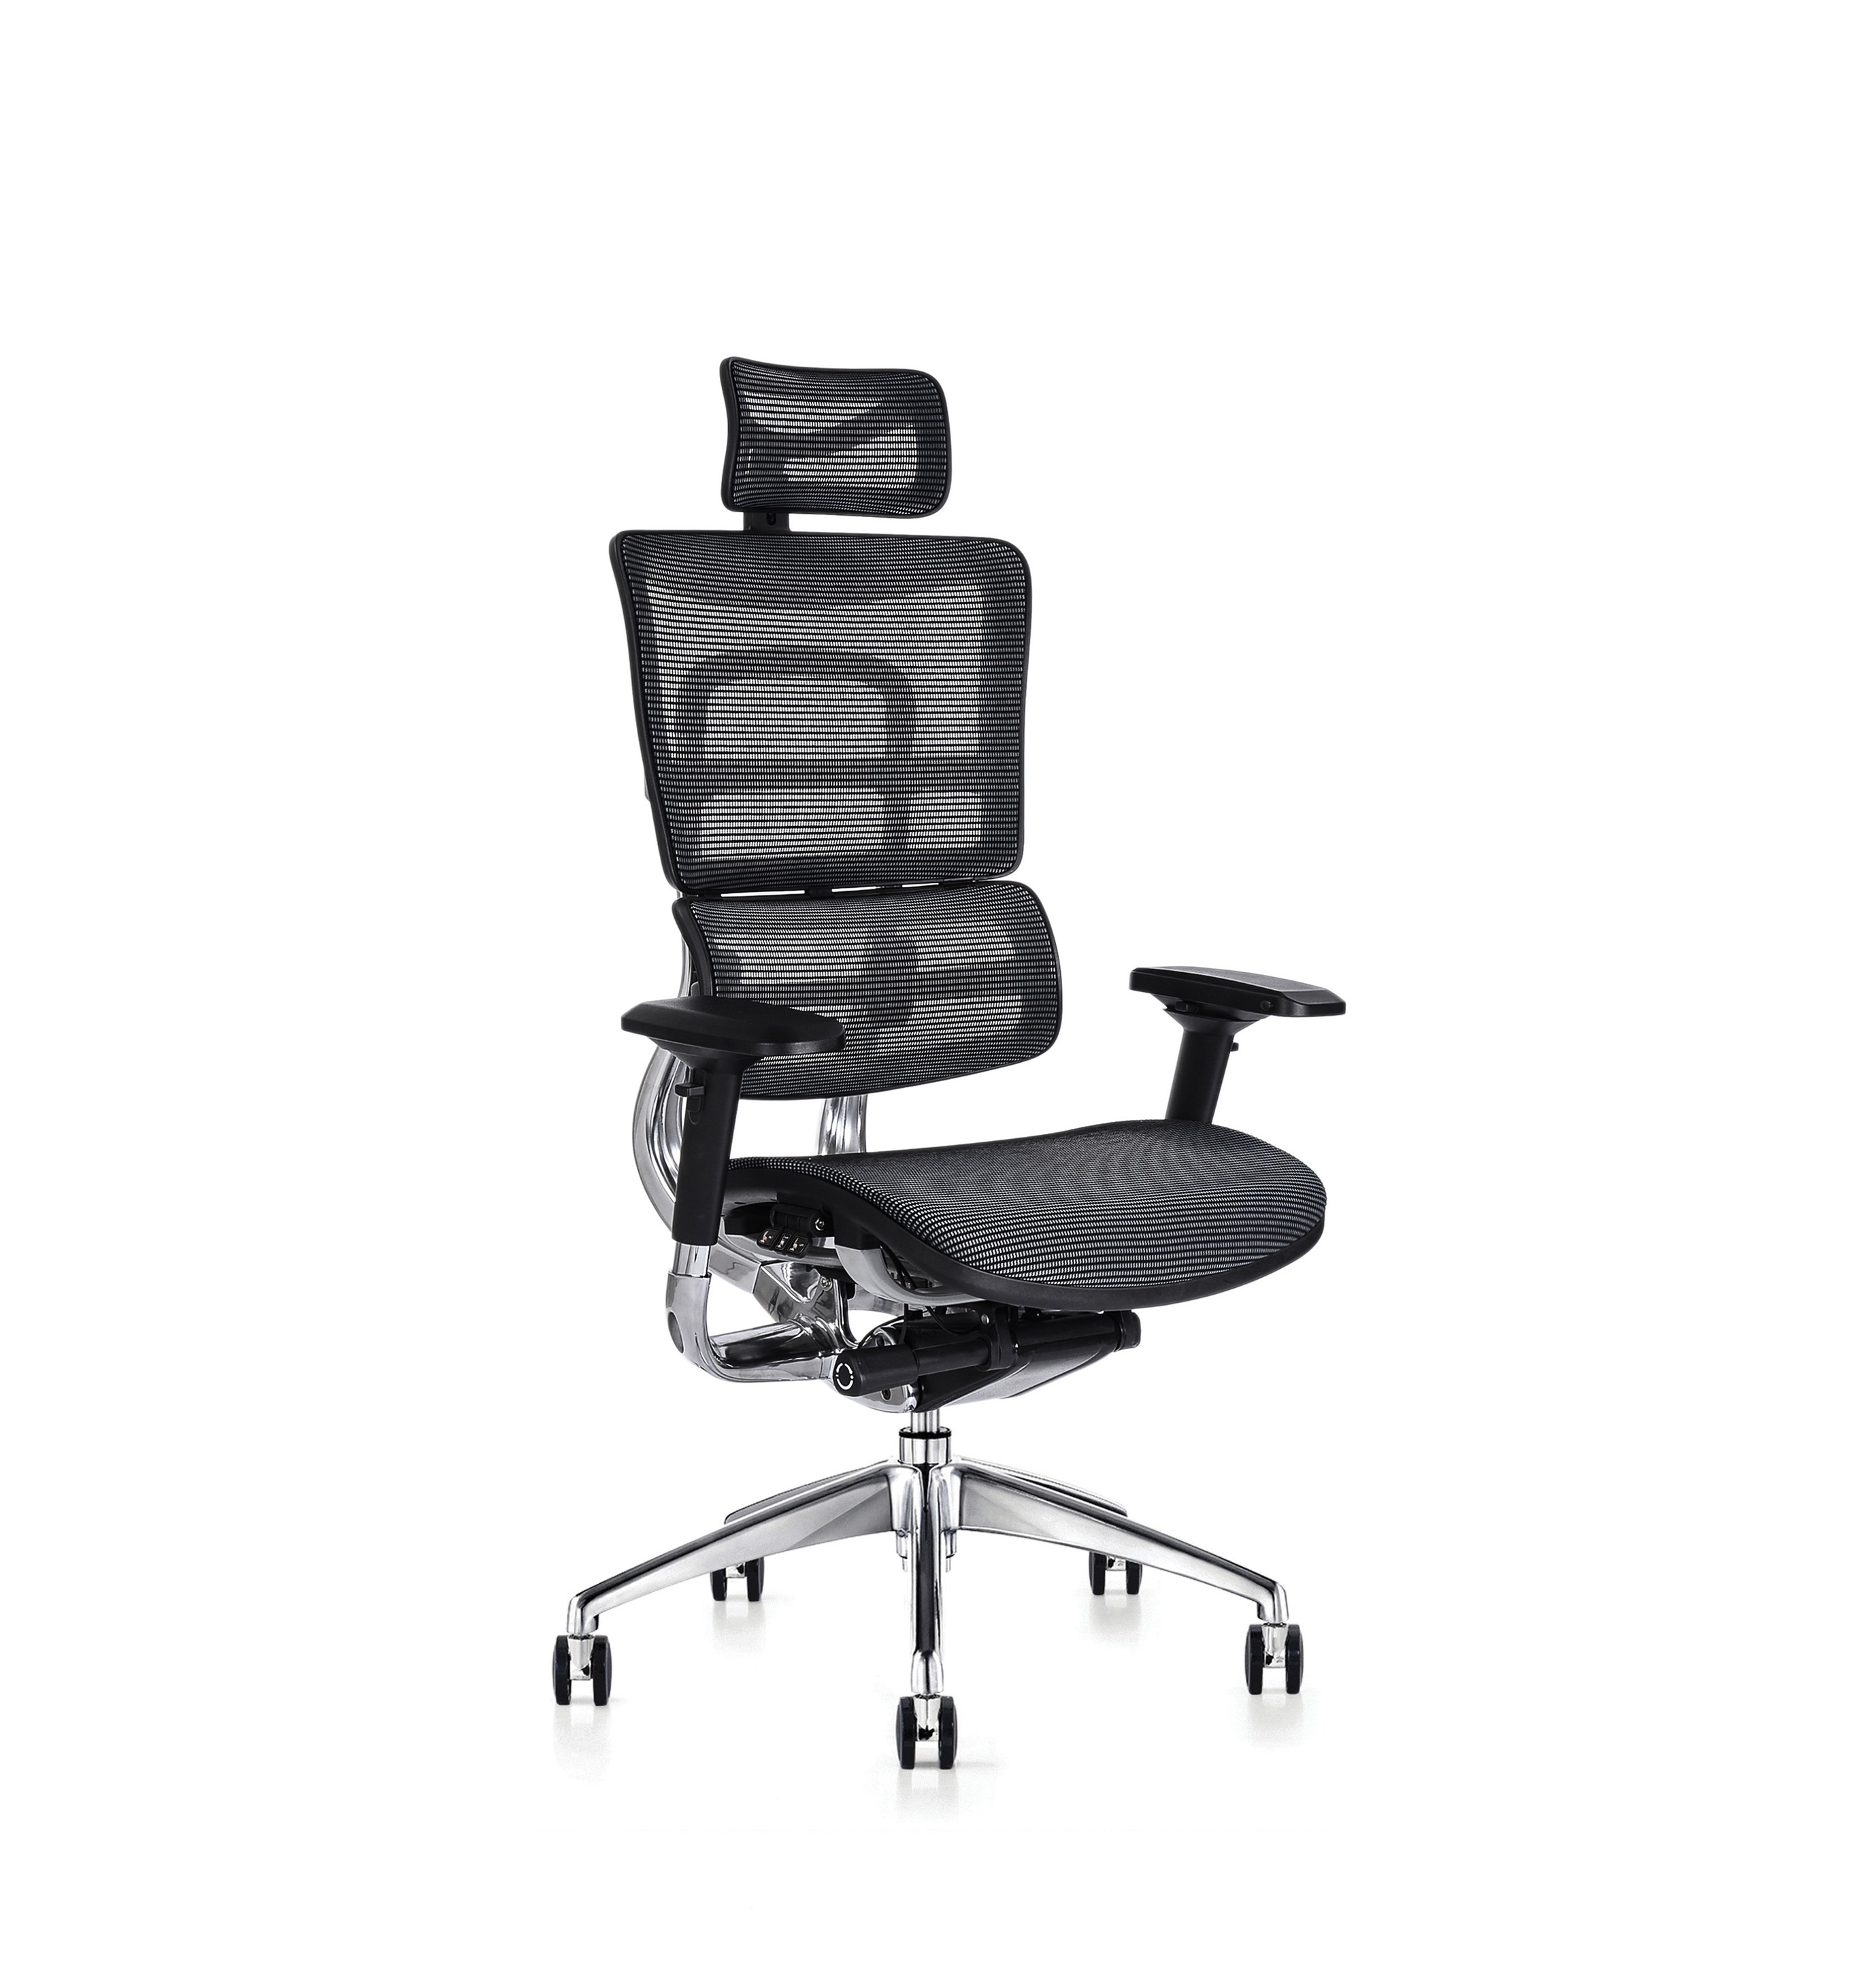 i29 with headrest - Comfort ergonomic, including the lumbar and pelvic support system and intuitive controls, it is simple for any user to quickly adjust and sit comfortably, correctly supported with dynamic movement from the moment they sit in the chair.